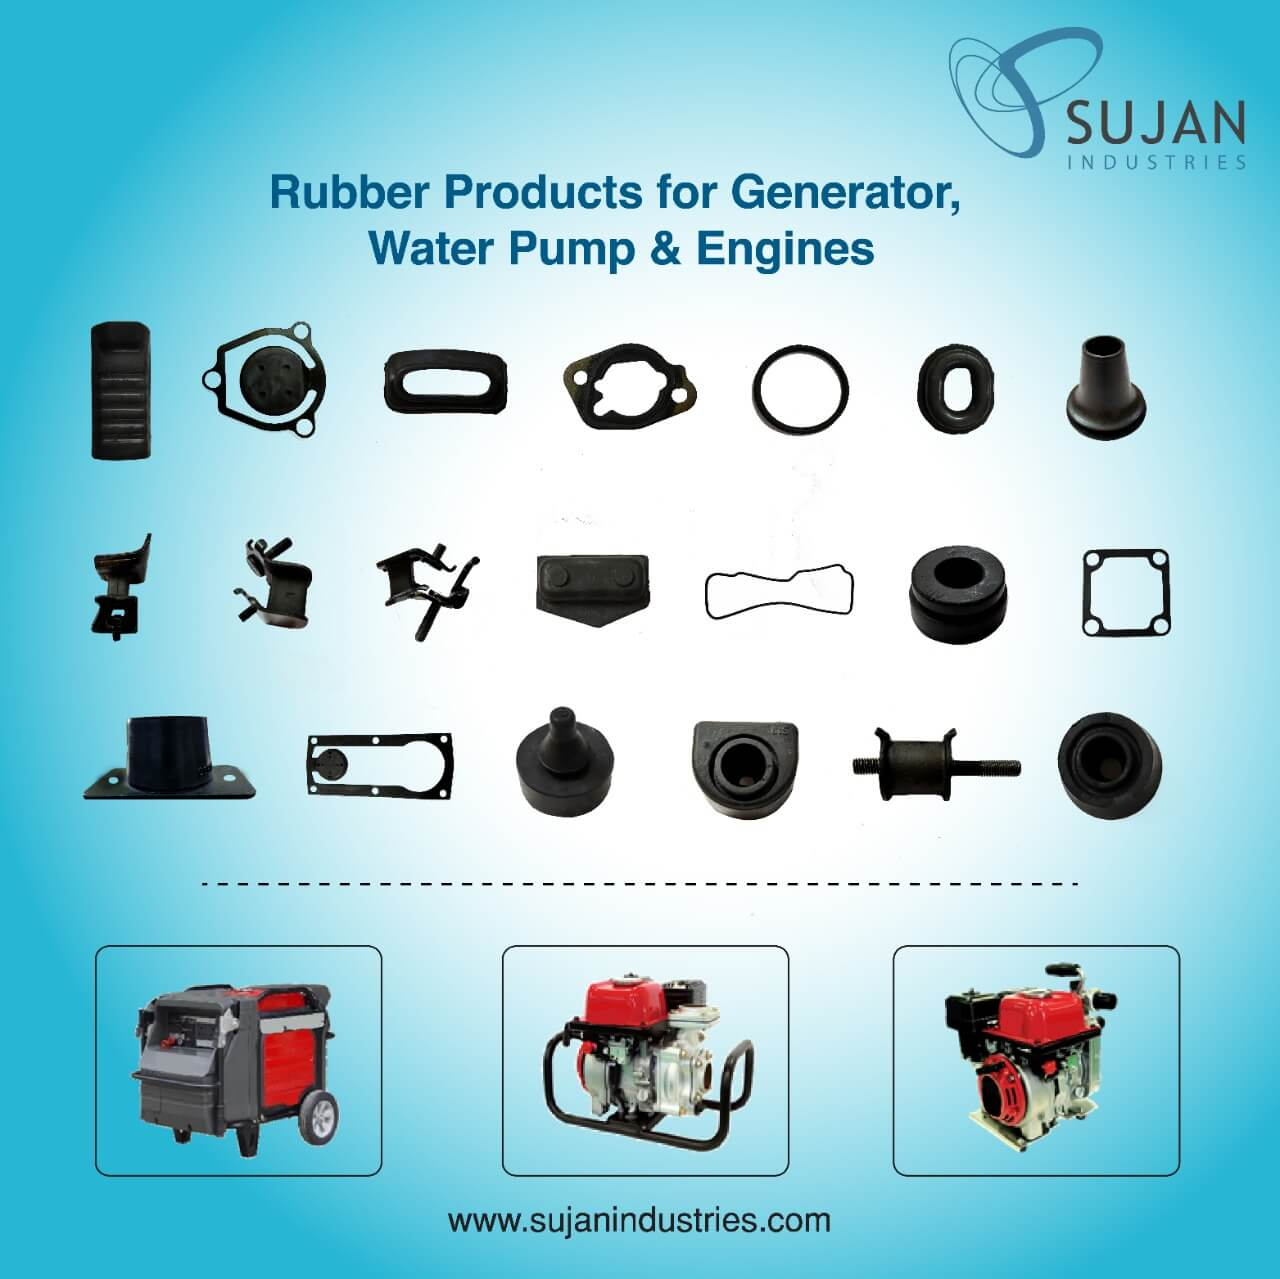 sujan-industries-power-products